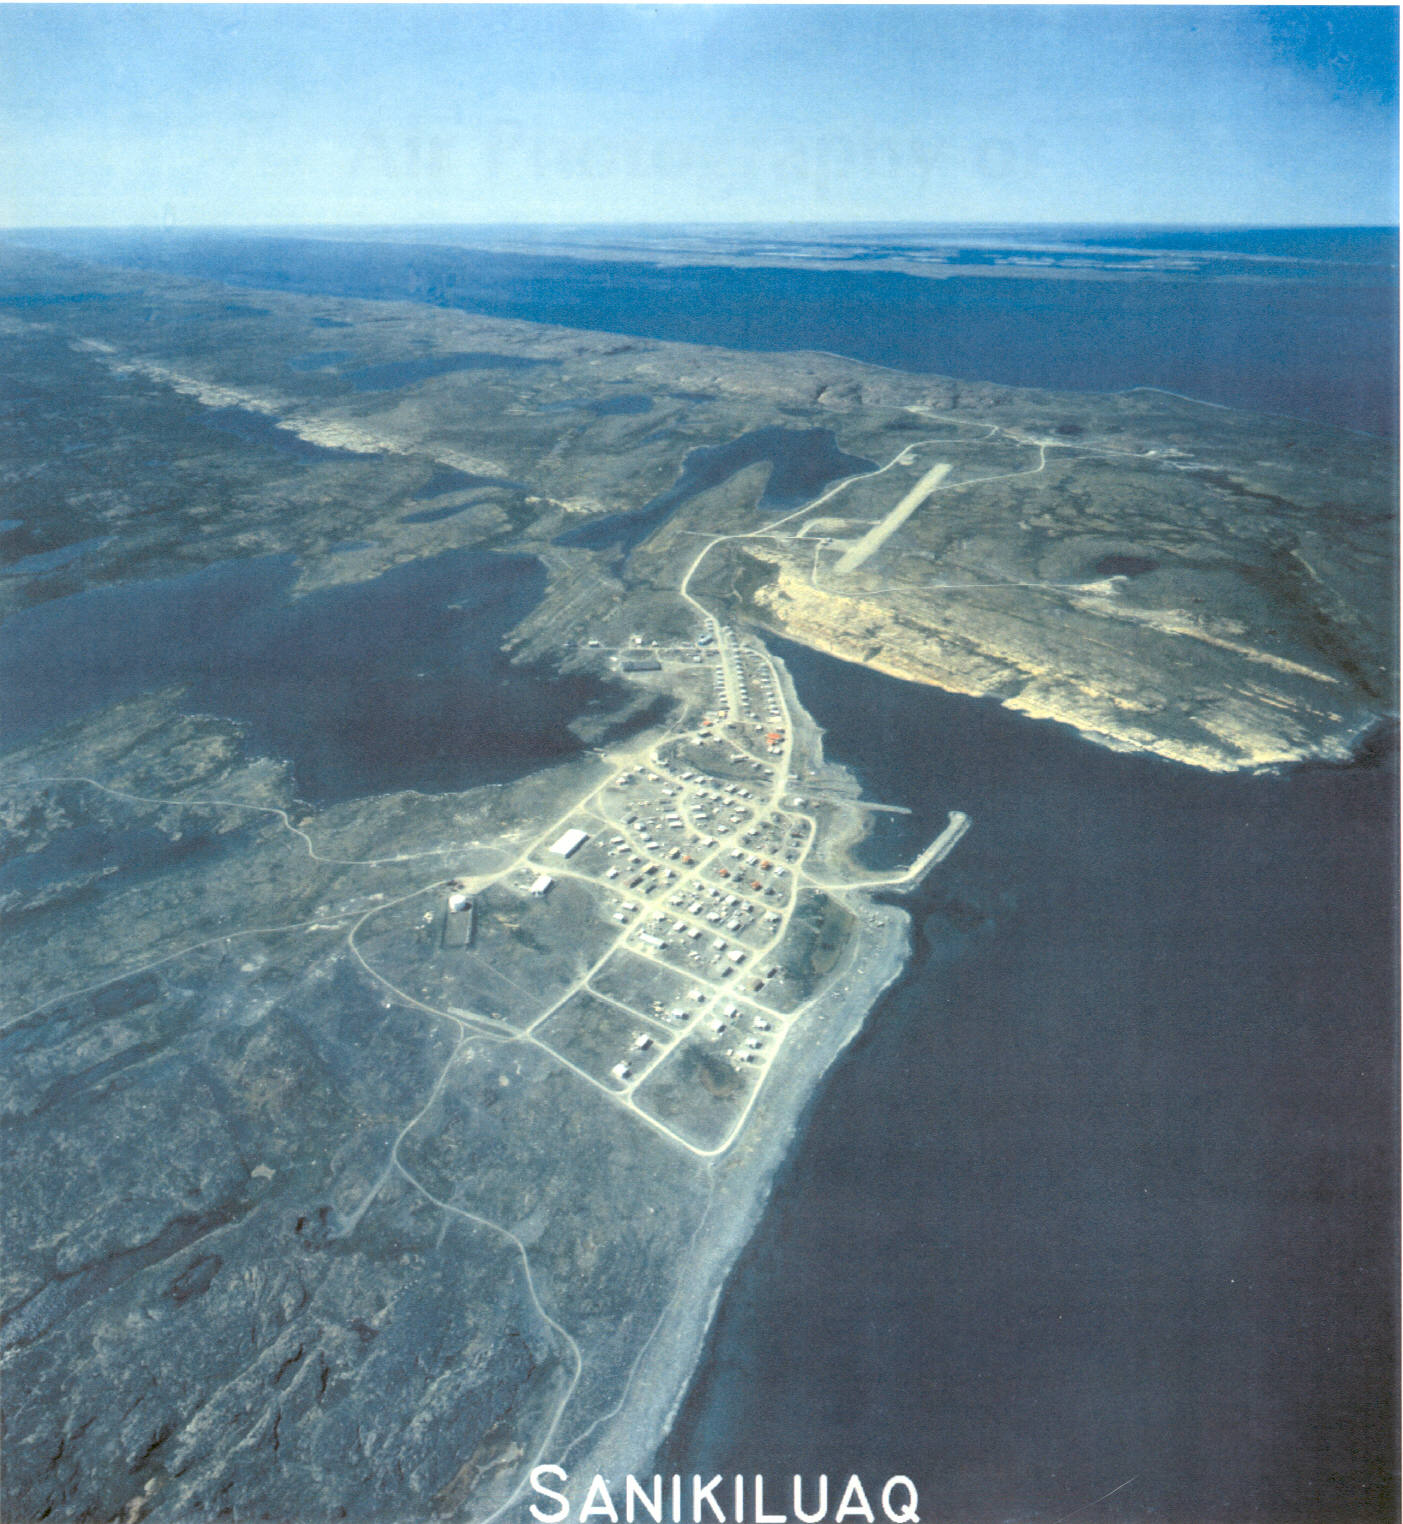 Bloodsworth island together with Aeronave de fuselagem larga besides Venice  Italy together with Morocco Land Of Beauty together with 6203789896. on tangier island map